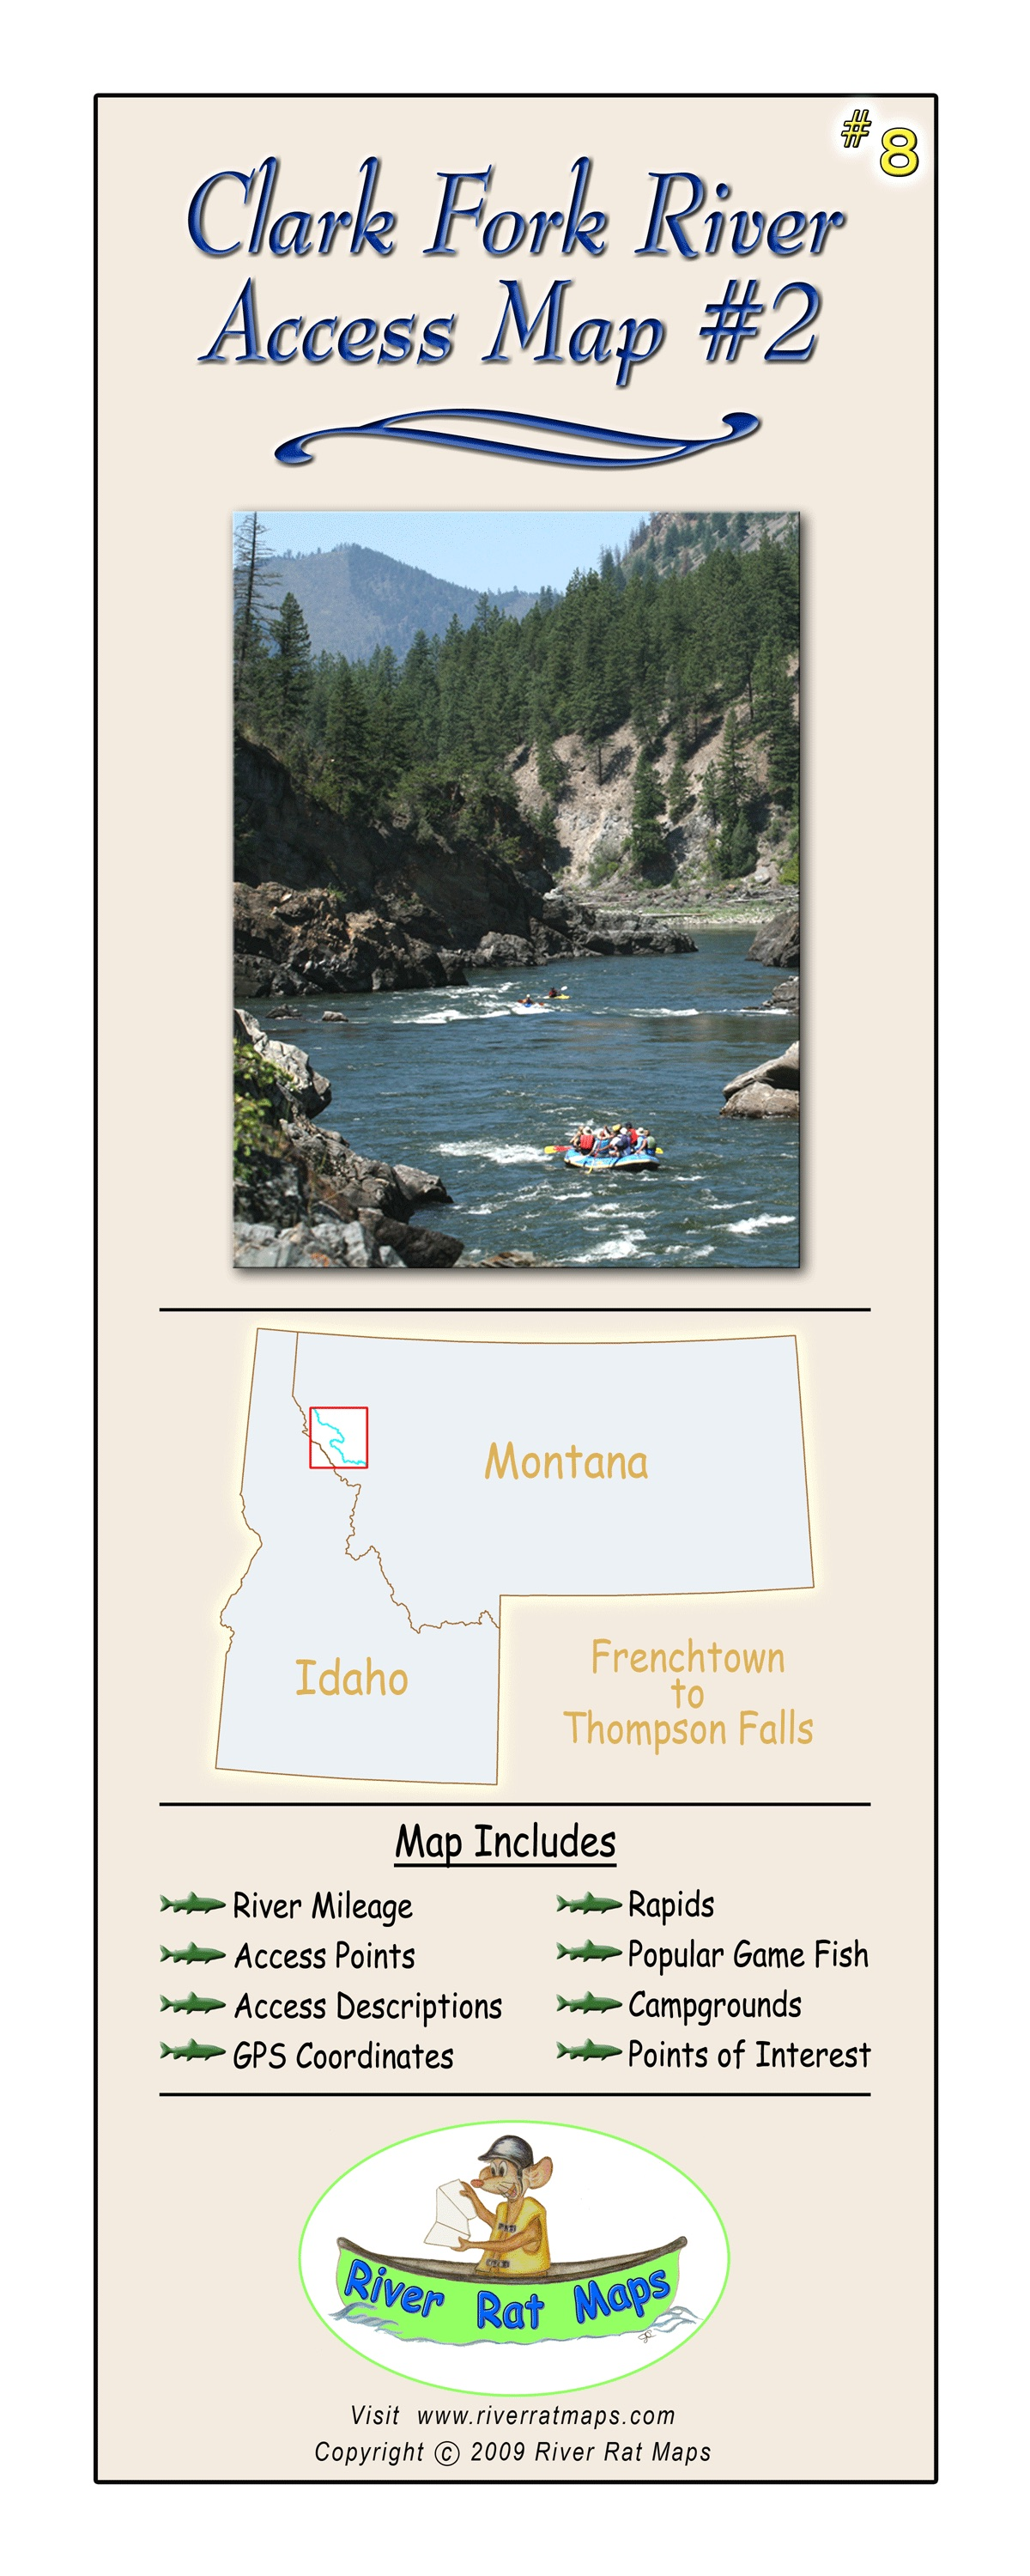 Clark Fork River 11x17 Fly Fishing Map